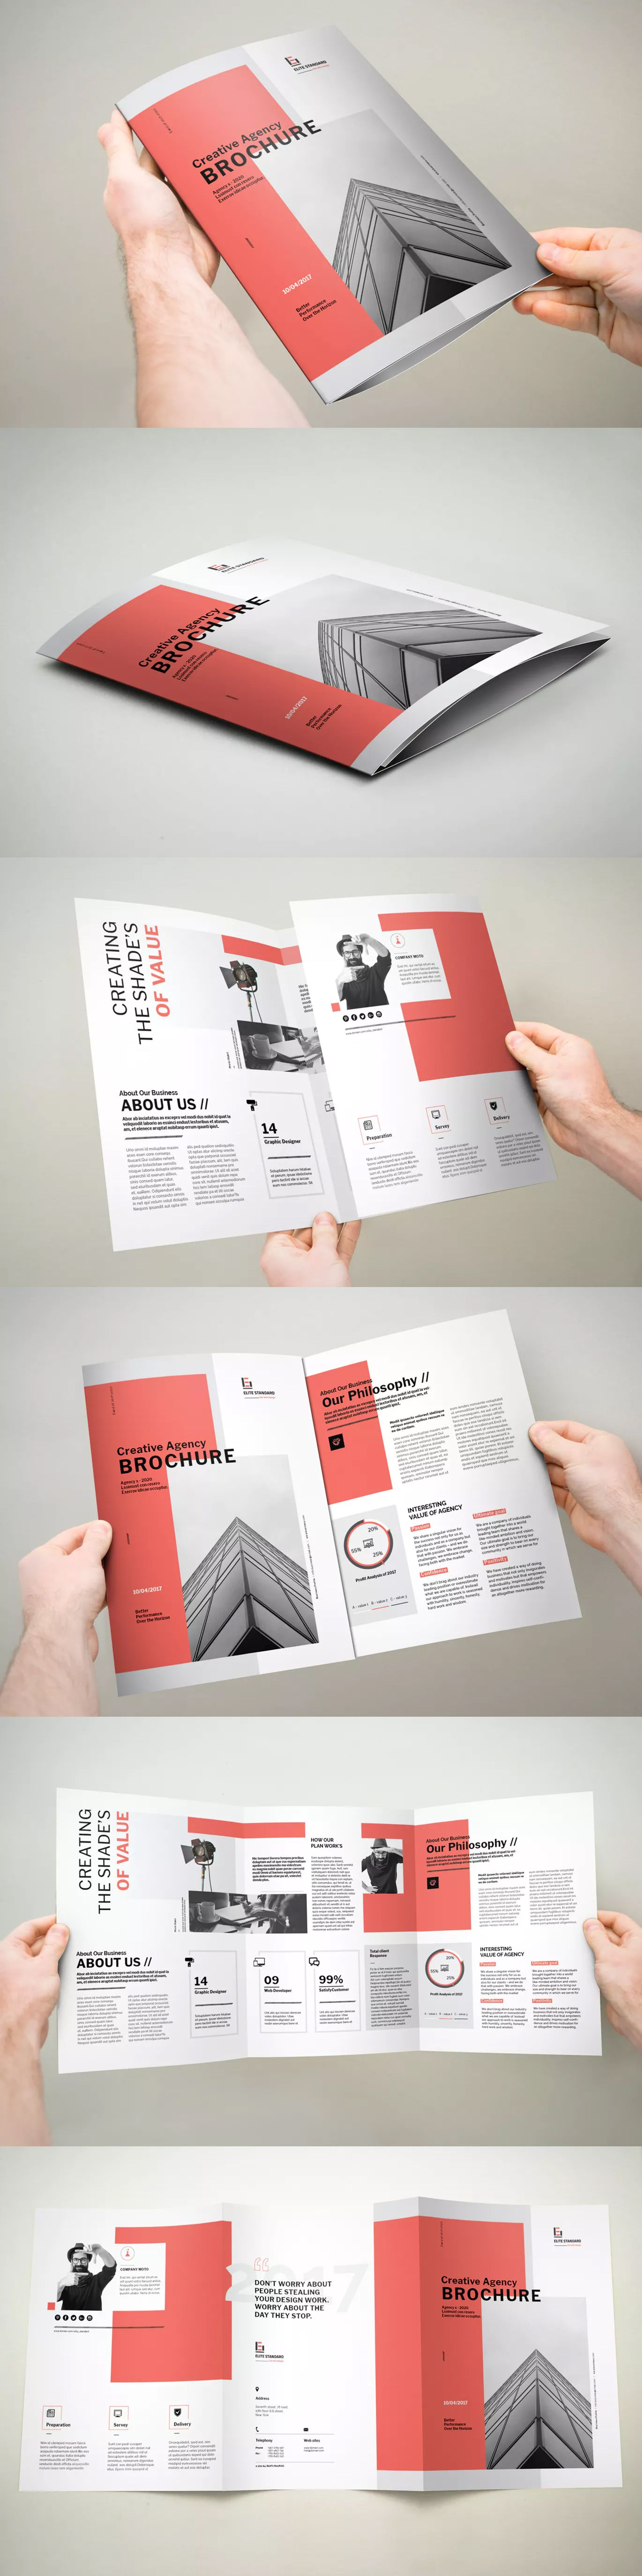 3xA4 Trifold Brochure Template InDesign INDD - A4 | Brochure design ...